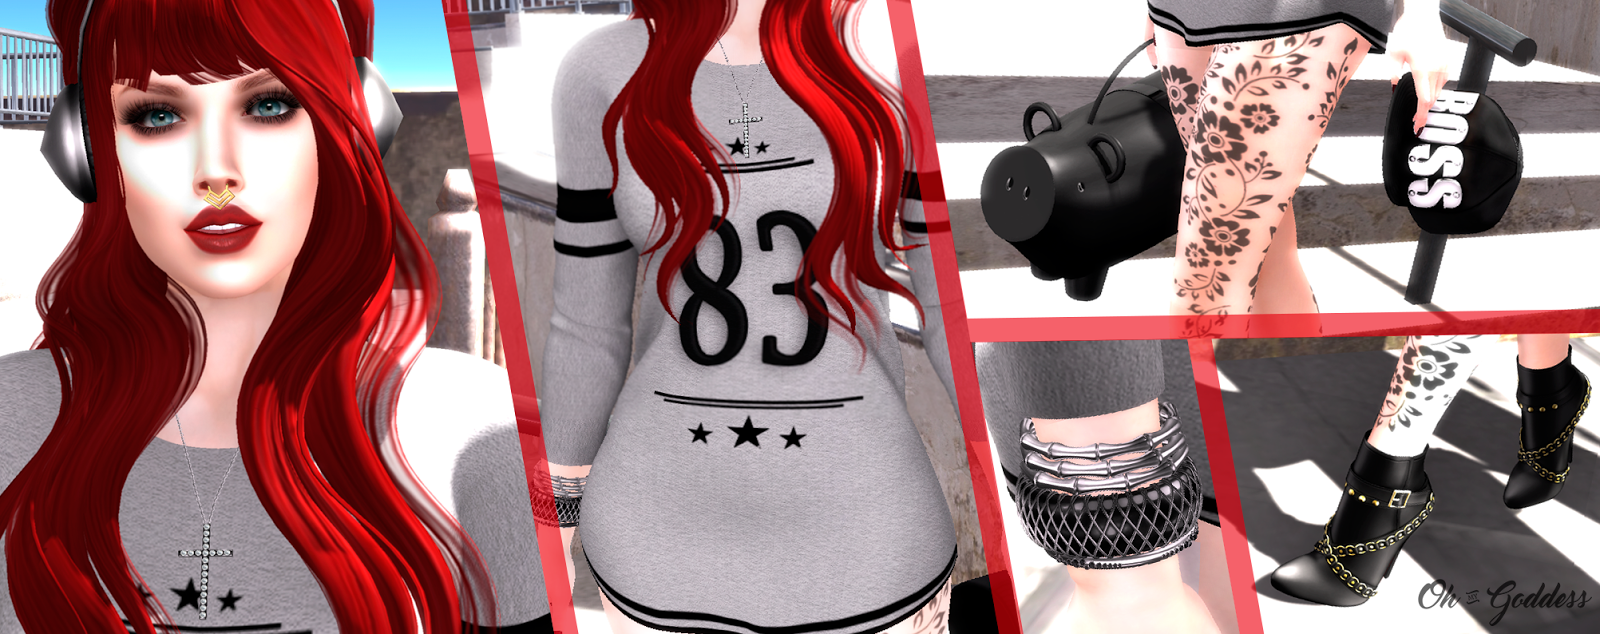 Second Life Fashion Blog: Sk8er Boi ♥ - The Gacha Garden / Tres Chic Venue Nov 16